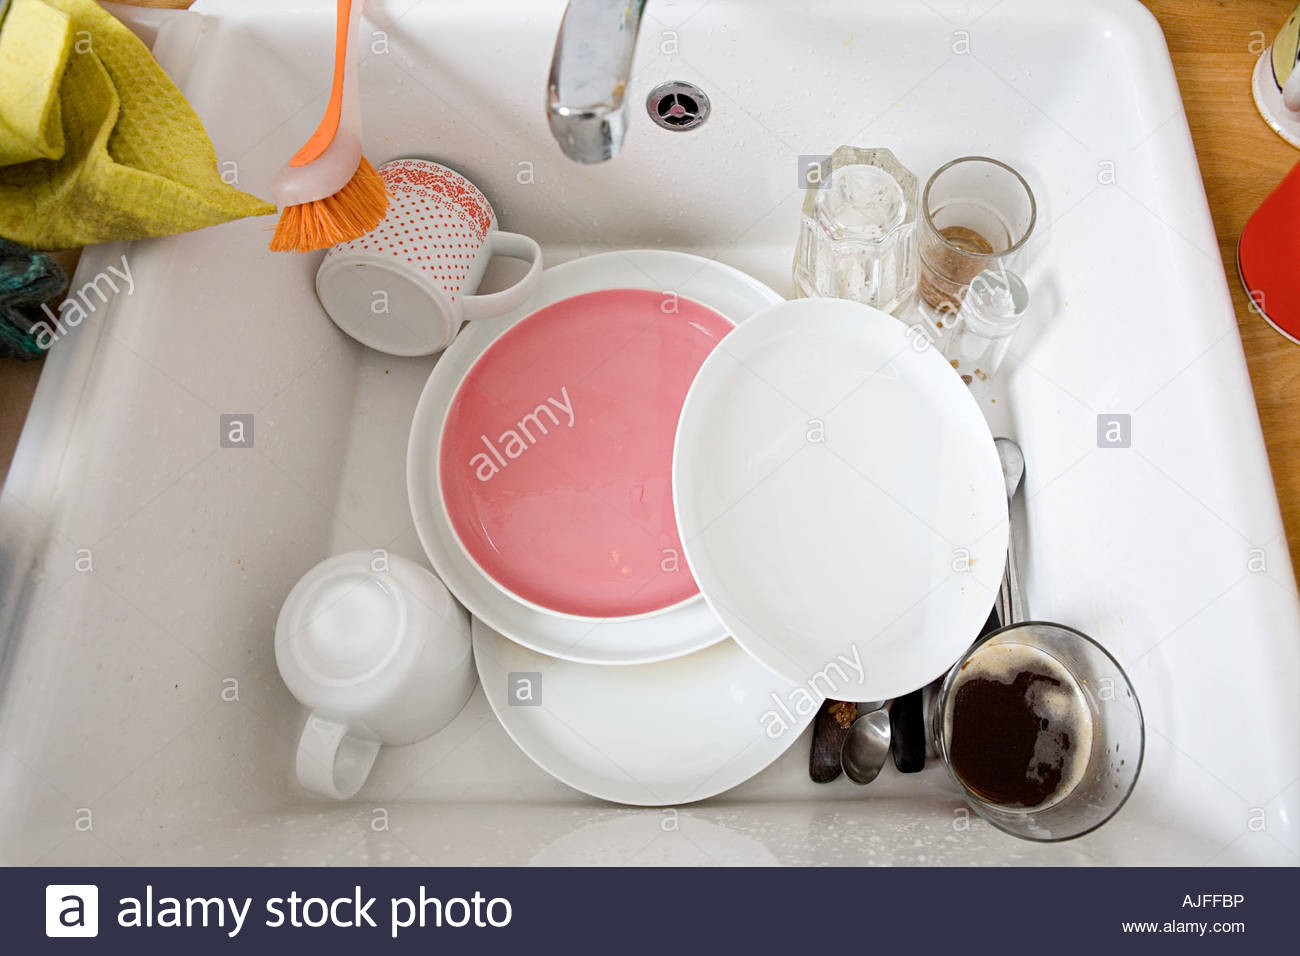 Washing up in sink - Stock Image